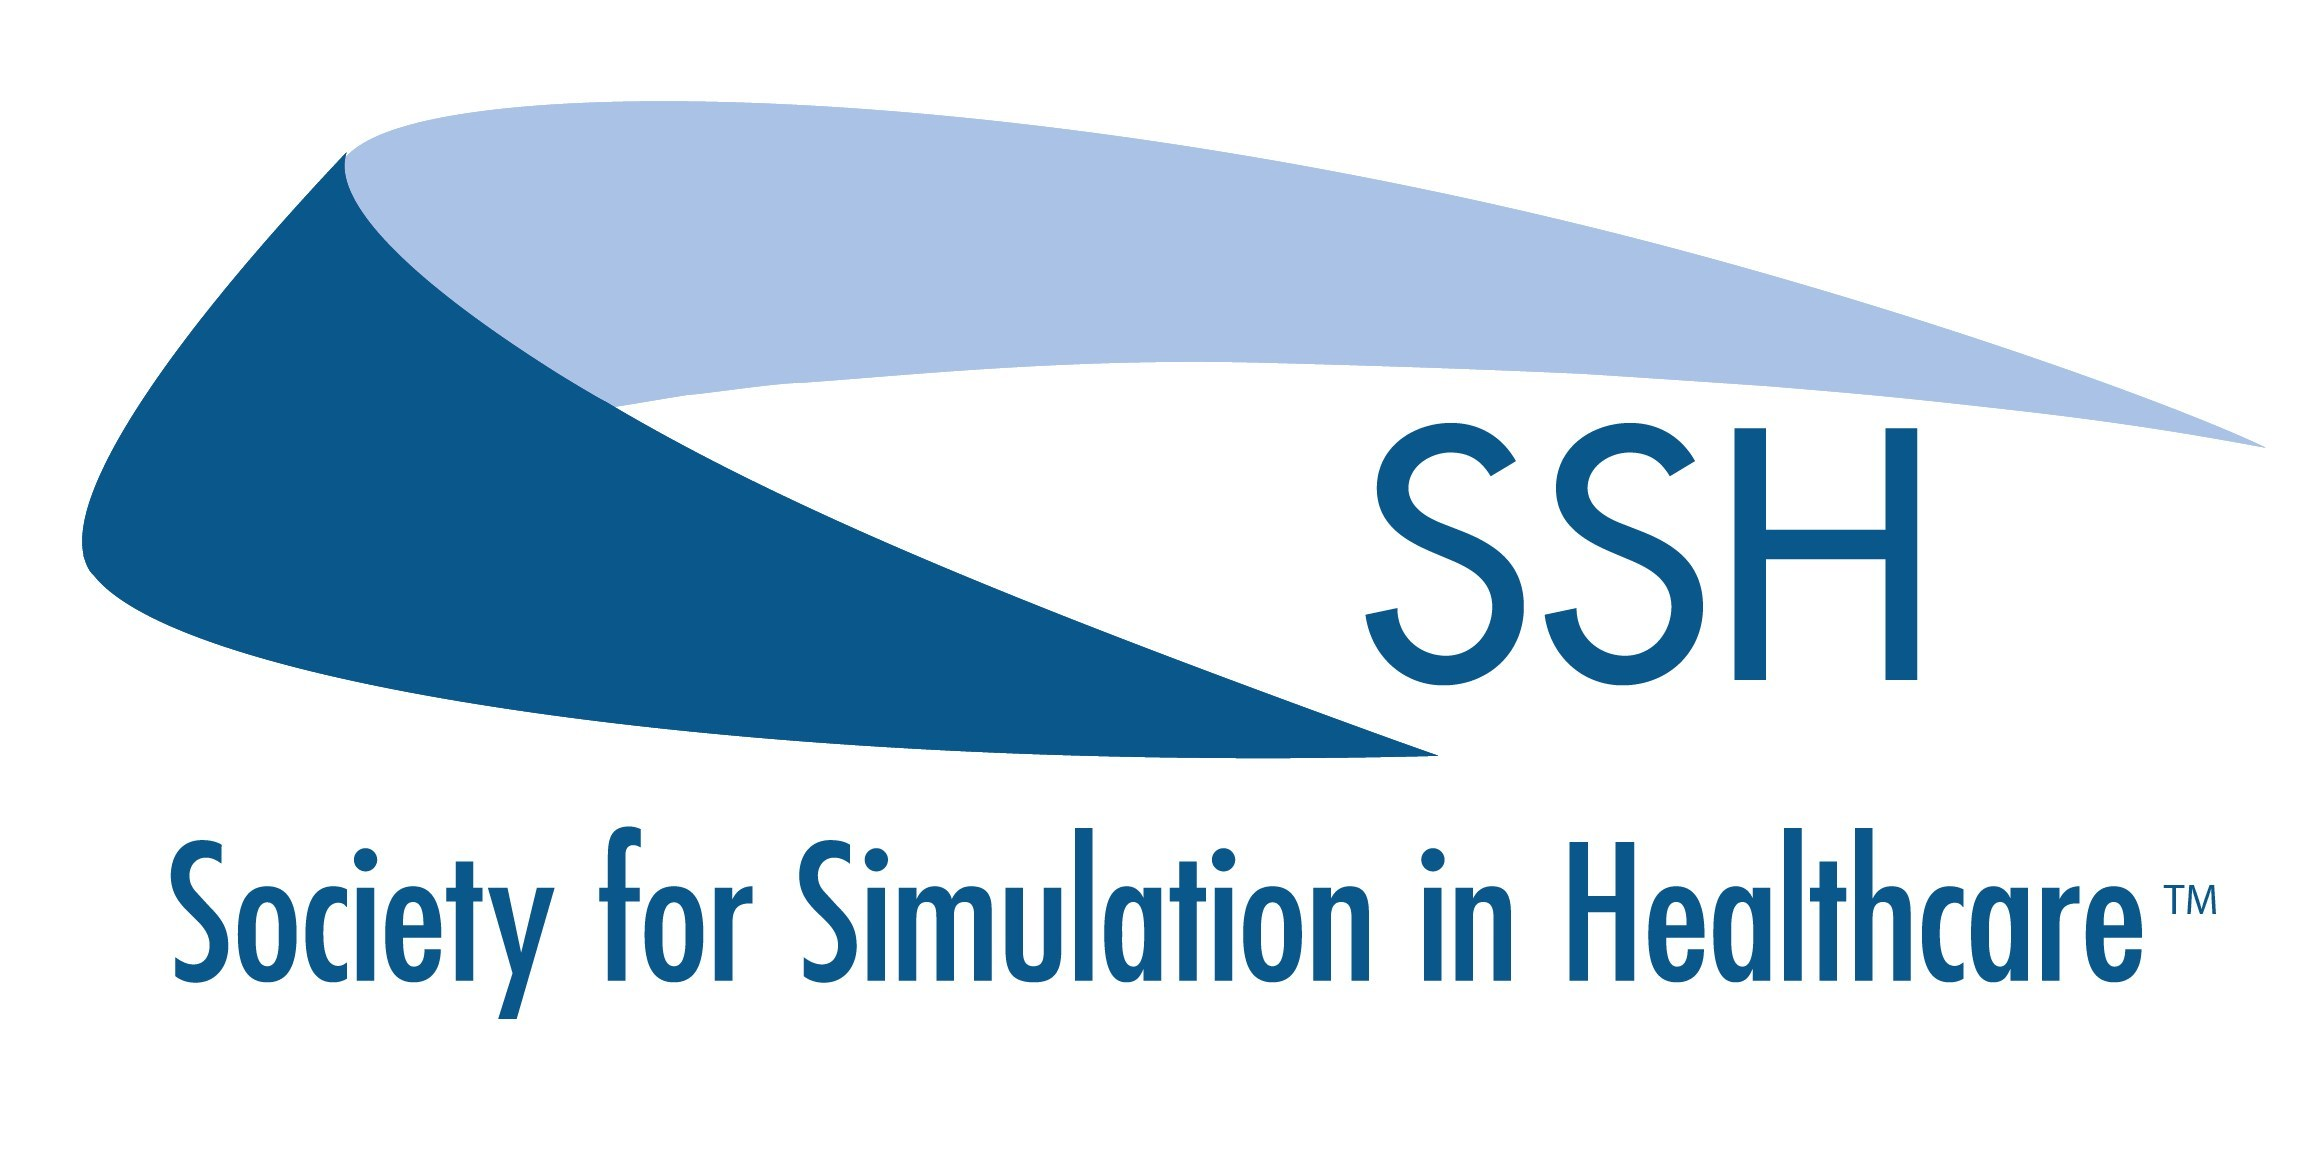 Planet TV Studios Presents the Society for Simulation in Healthcare on New Frontiers in Healthcare TV Series